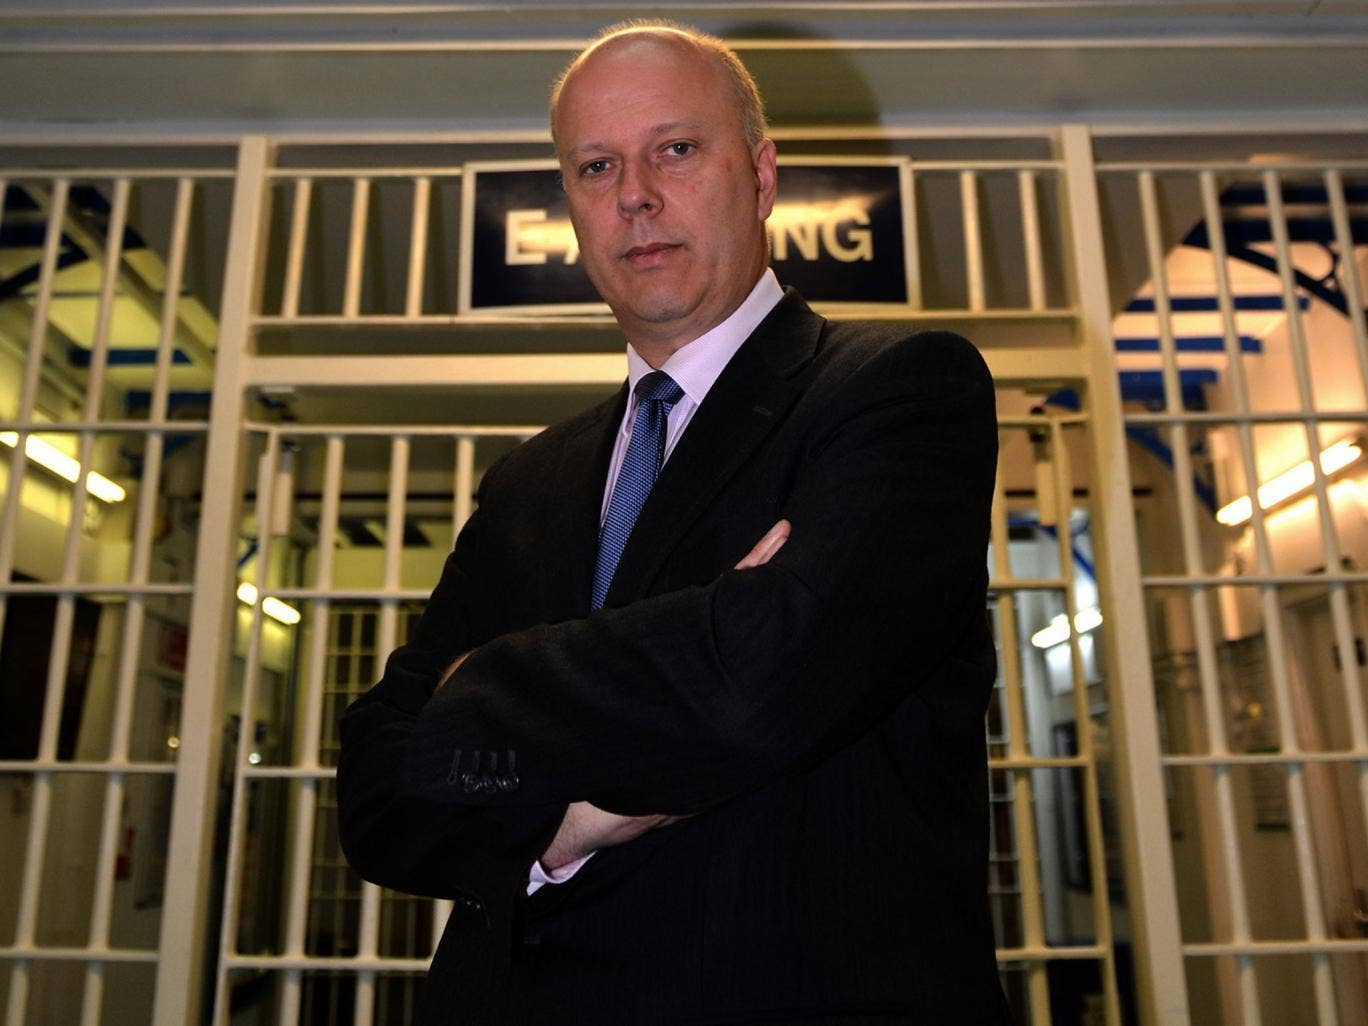 Chris Grayling, the Justice Secretary, has asked for a wider review of family courts